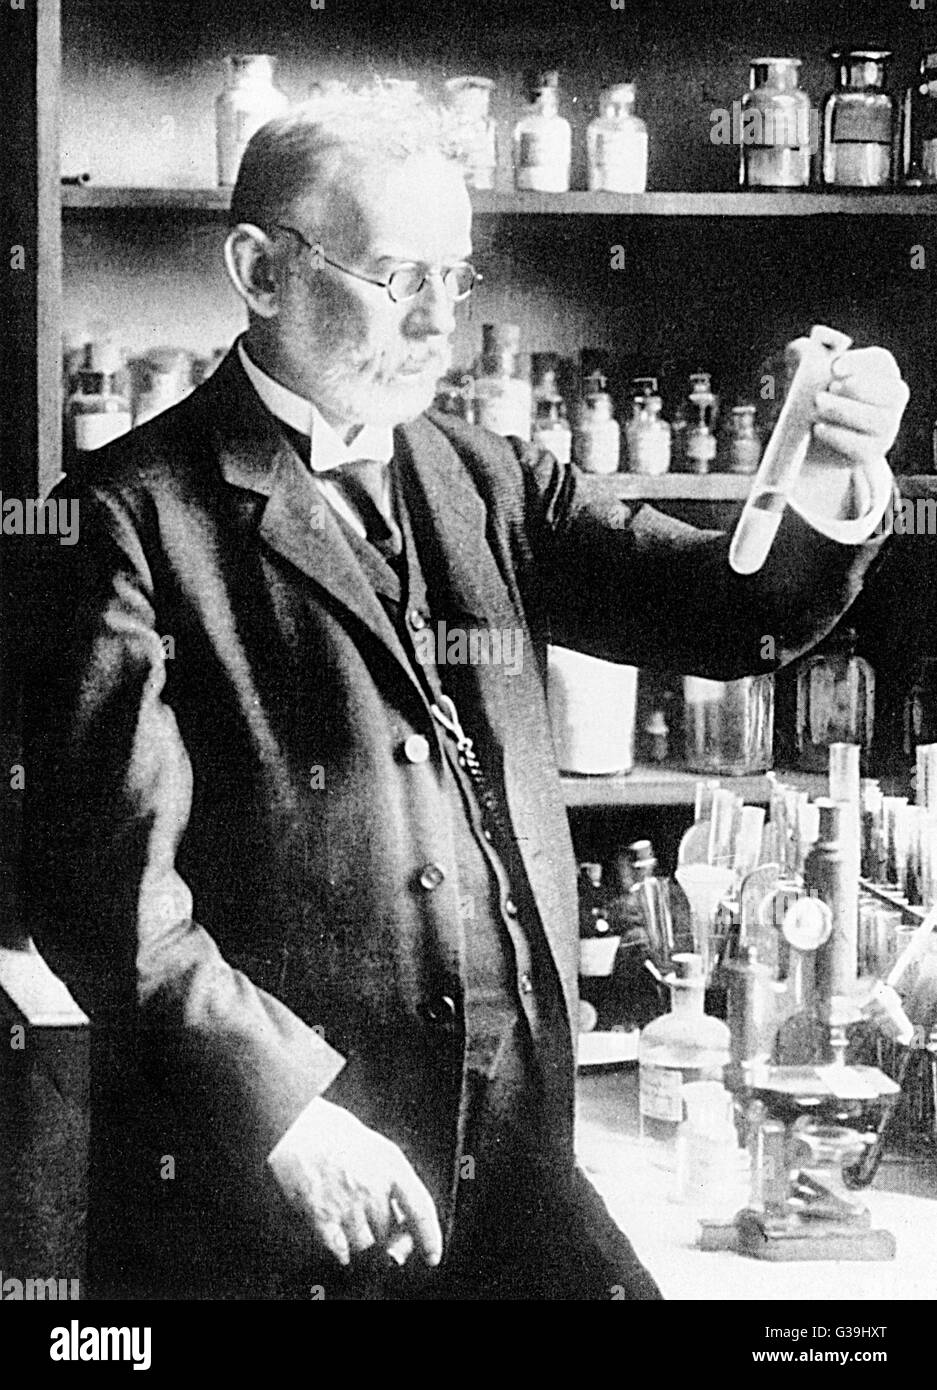 PAUL EHRLICH  German bacteriologist and Nobel prize winner in 1908,  working in his laboratory      Date: 1854  - Stock Image